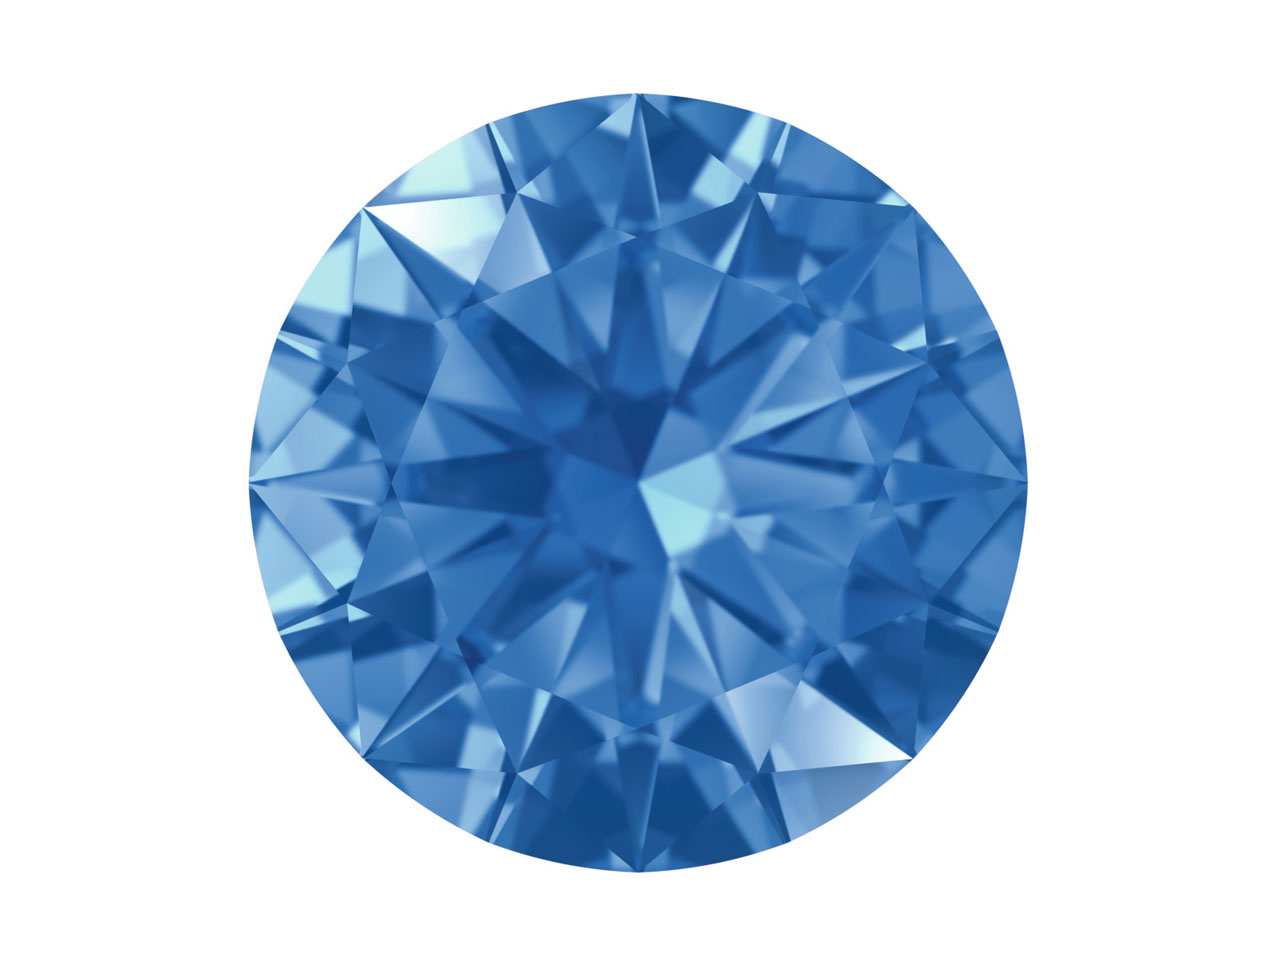 gemstone sapphire gemstones loose pear is shape grs image loading royal certified blue itm